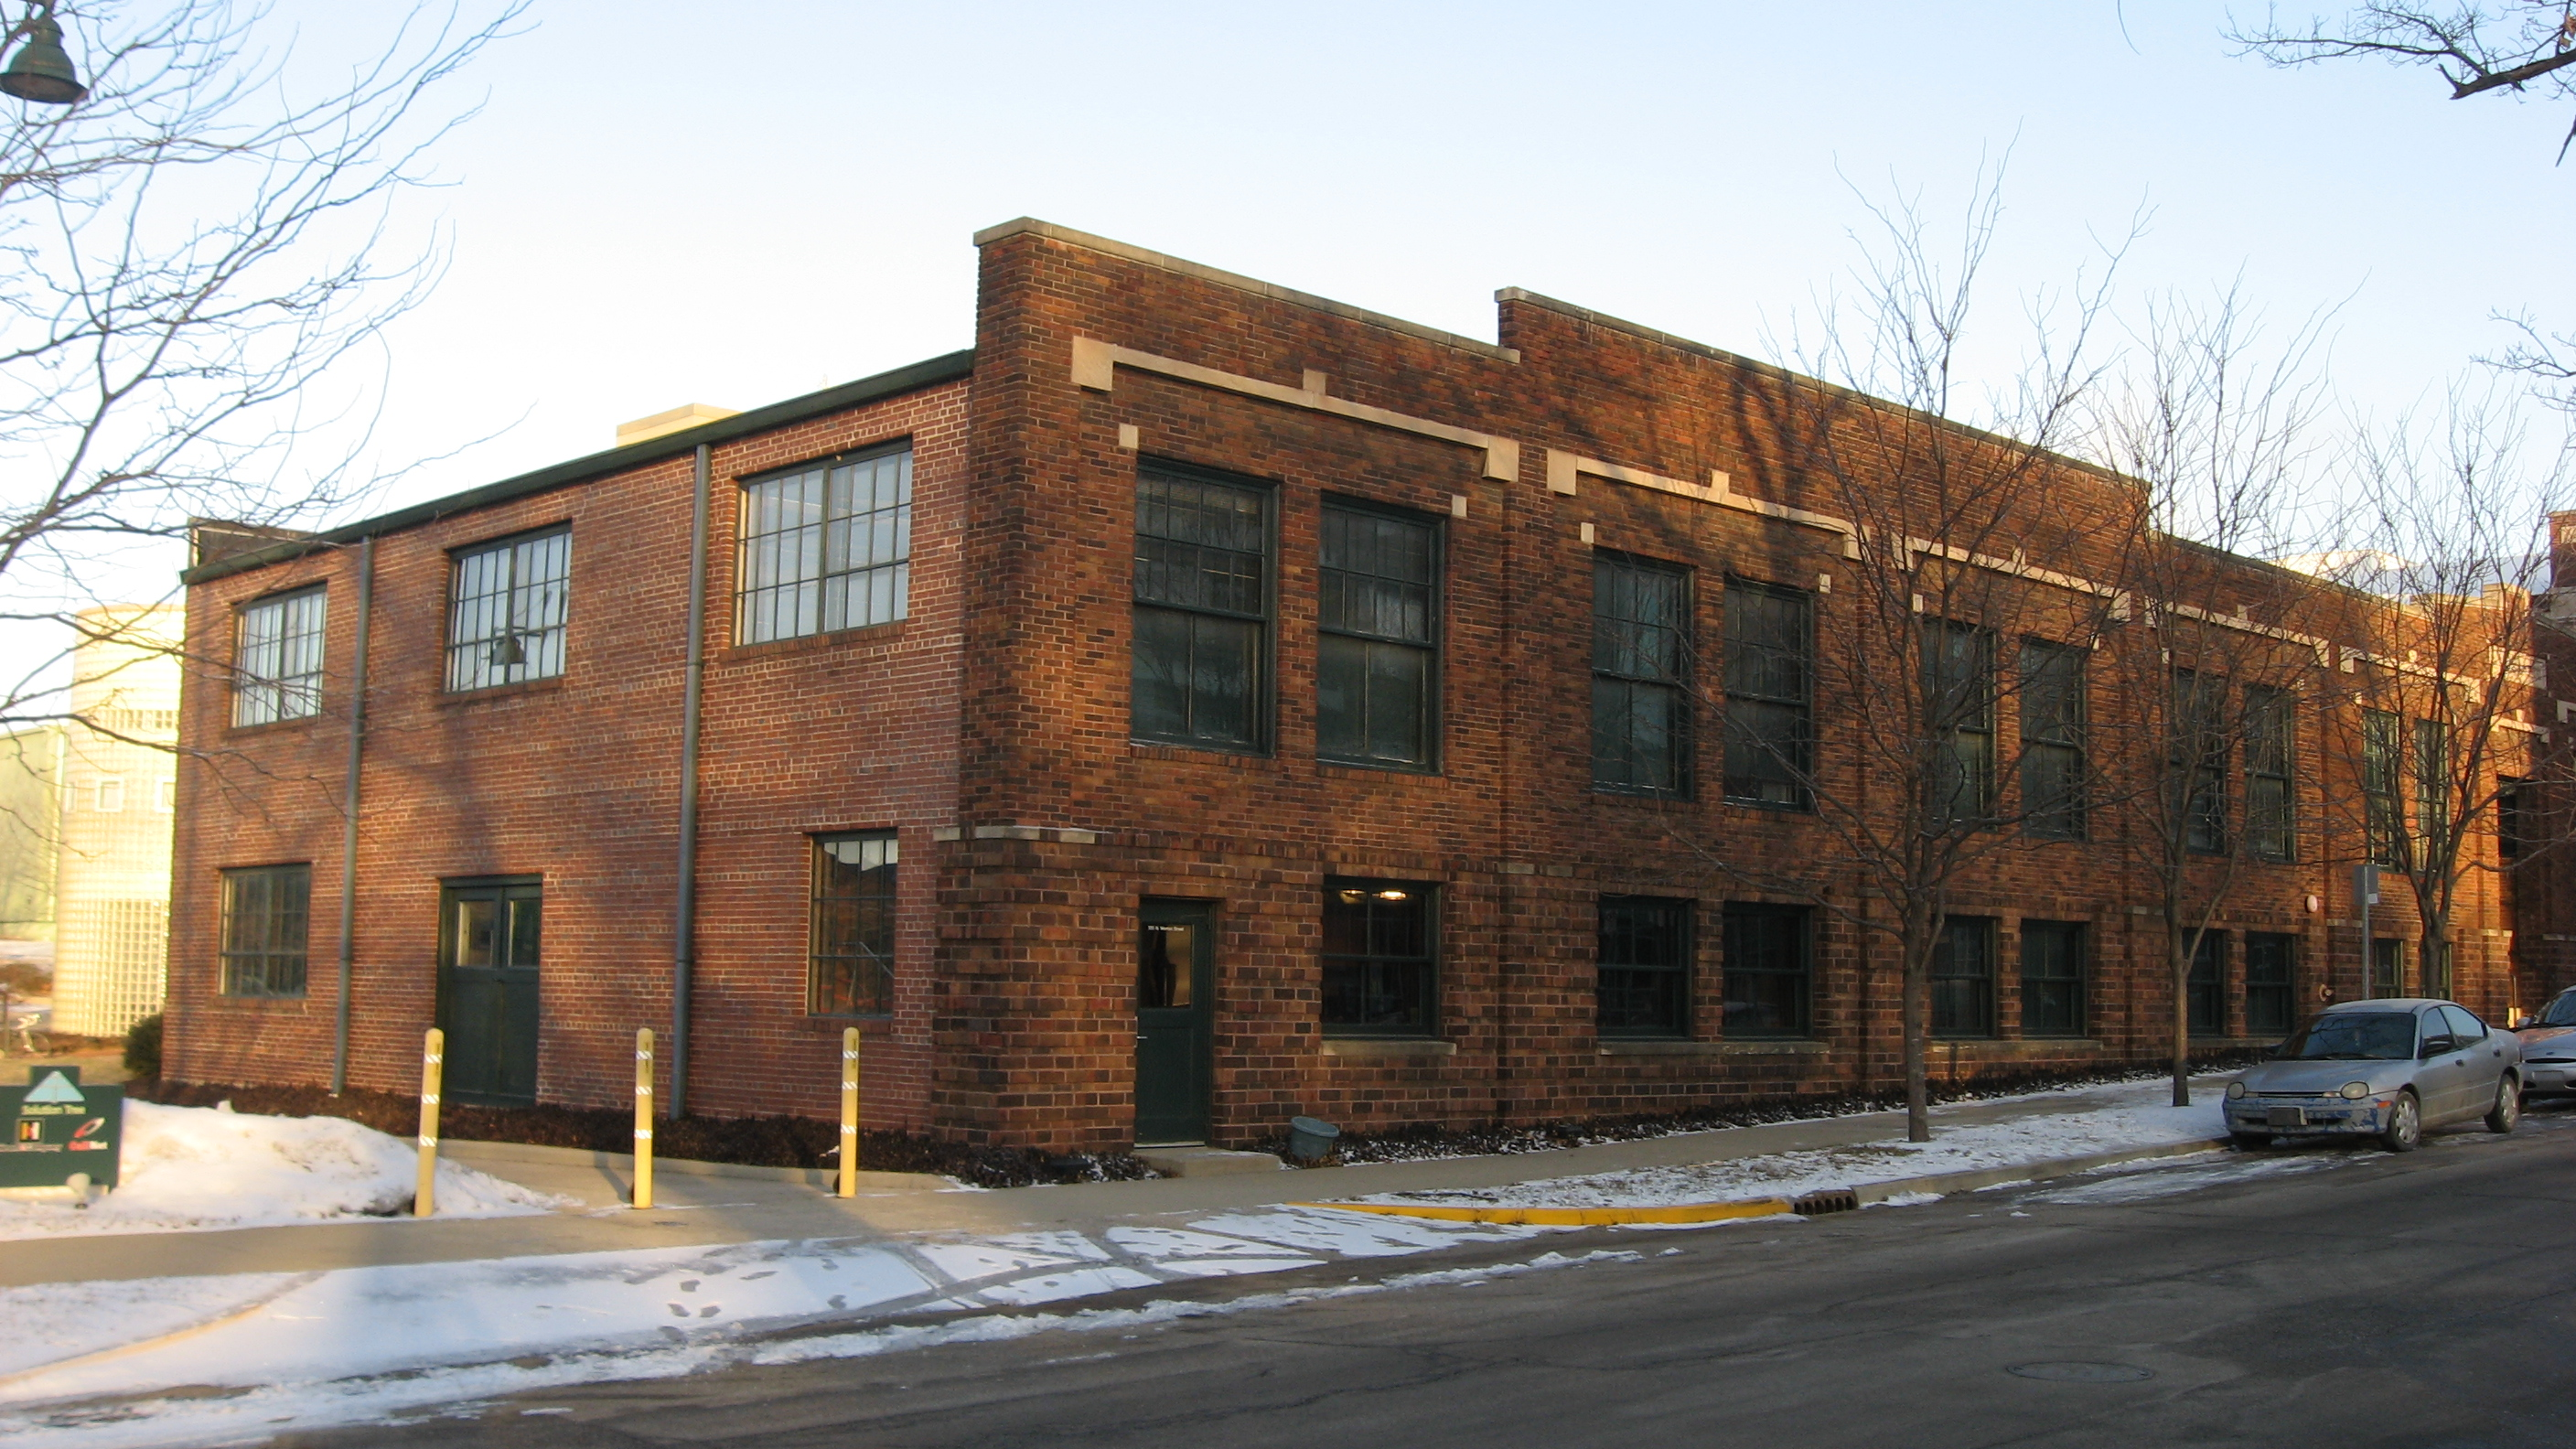 File:Morton Street North 531, Showers Brothers Furniture Showroom,  Bloomington West Side HD